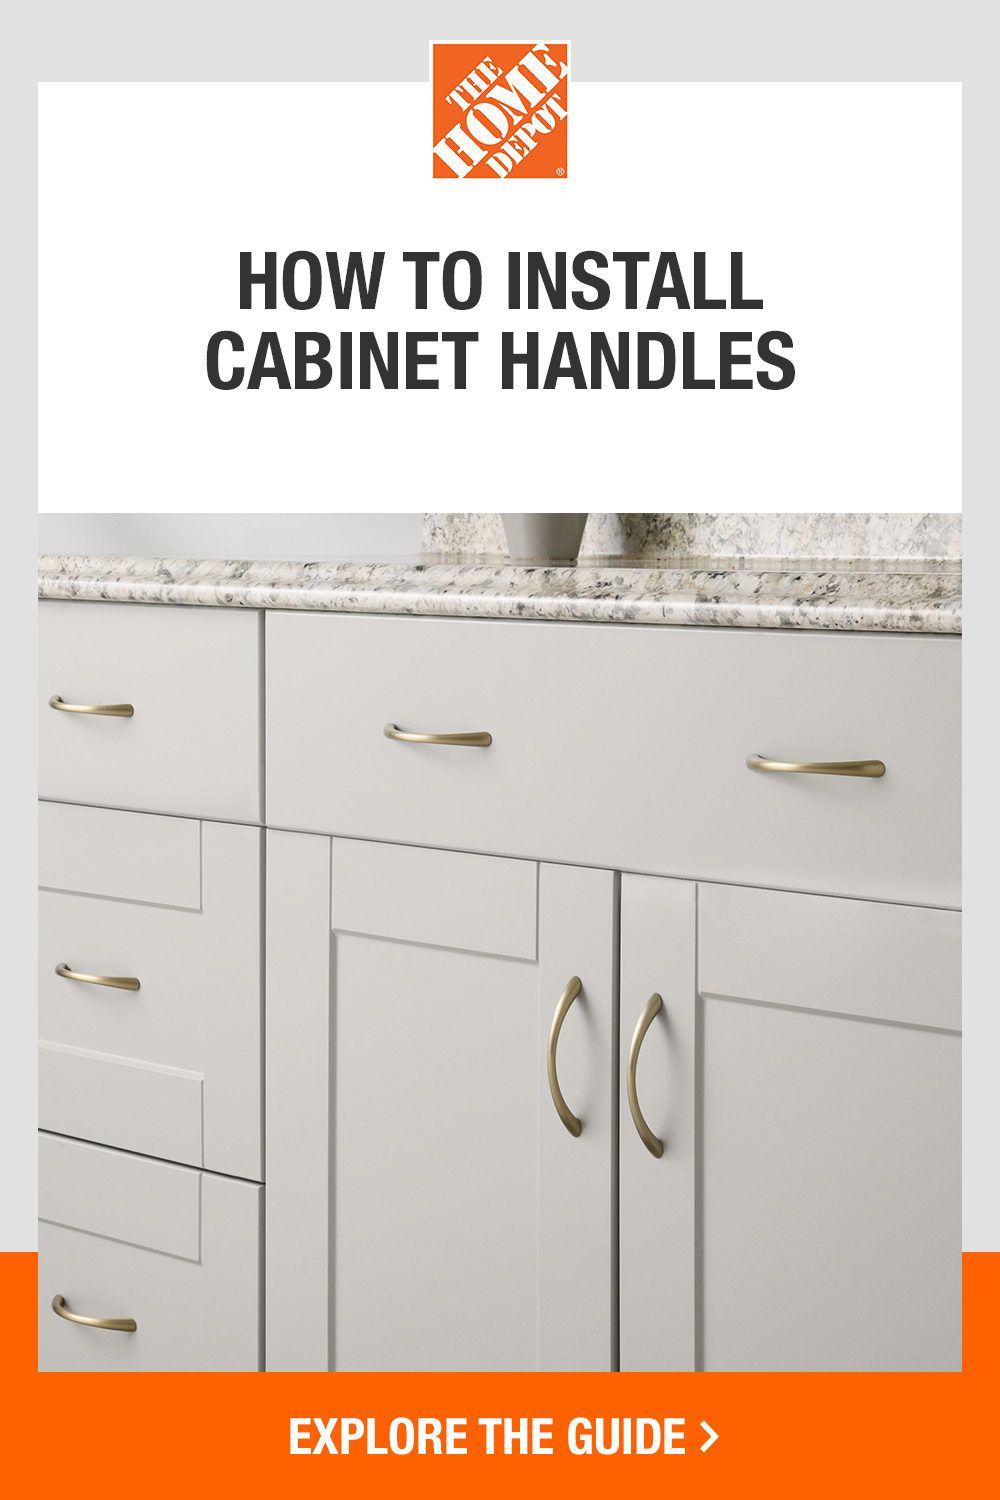 Give your cabinets a refresh with help from The Home Depot. Our DIY guide will show you step-by-step installation instructions, so you can easily transform your spaces with new hardware. Click to start your project with The Home Depot.